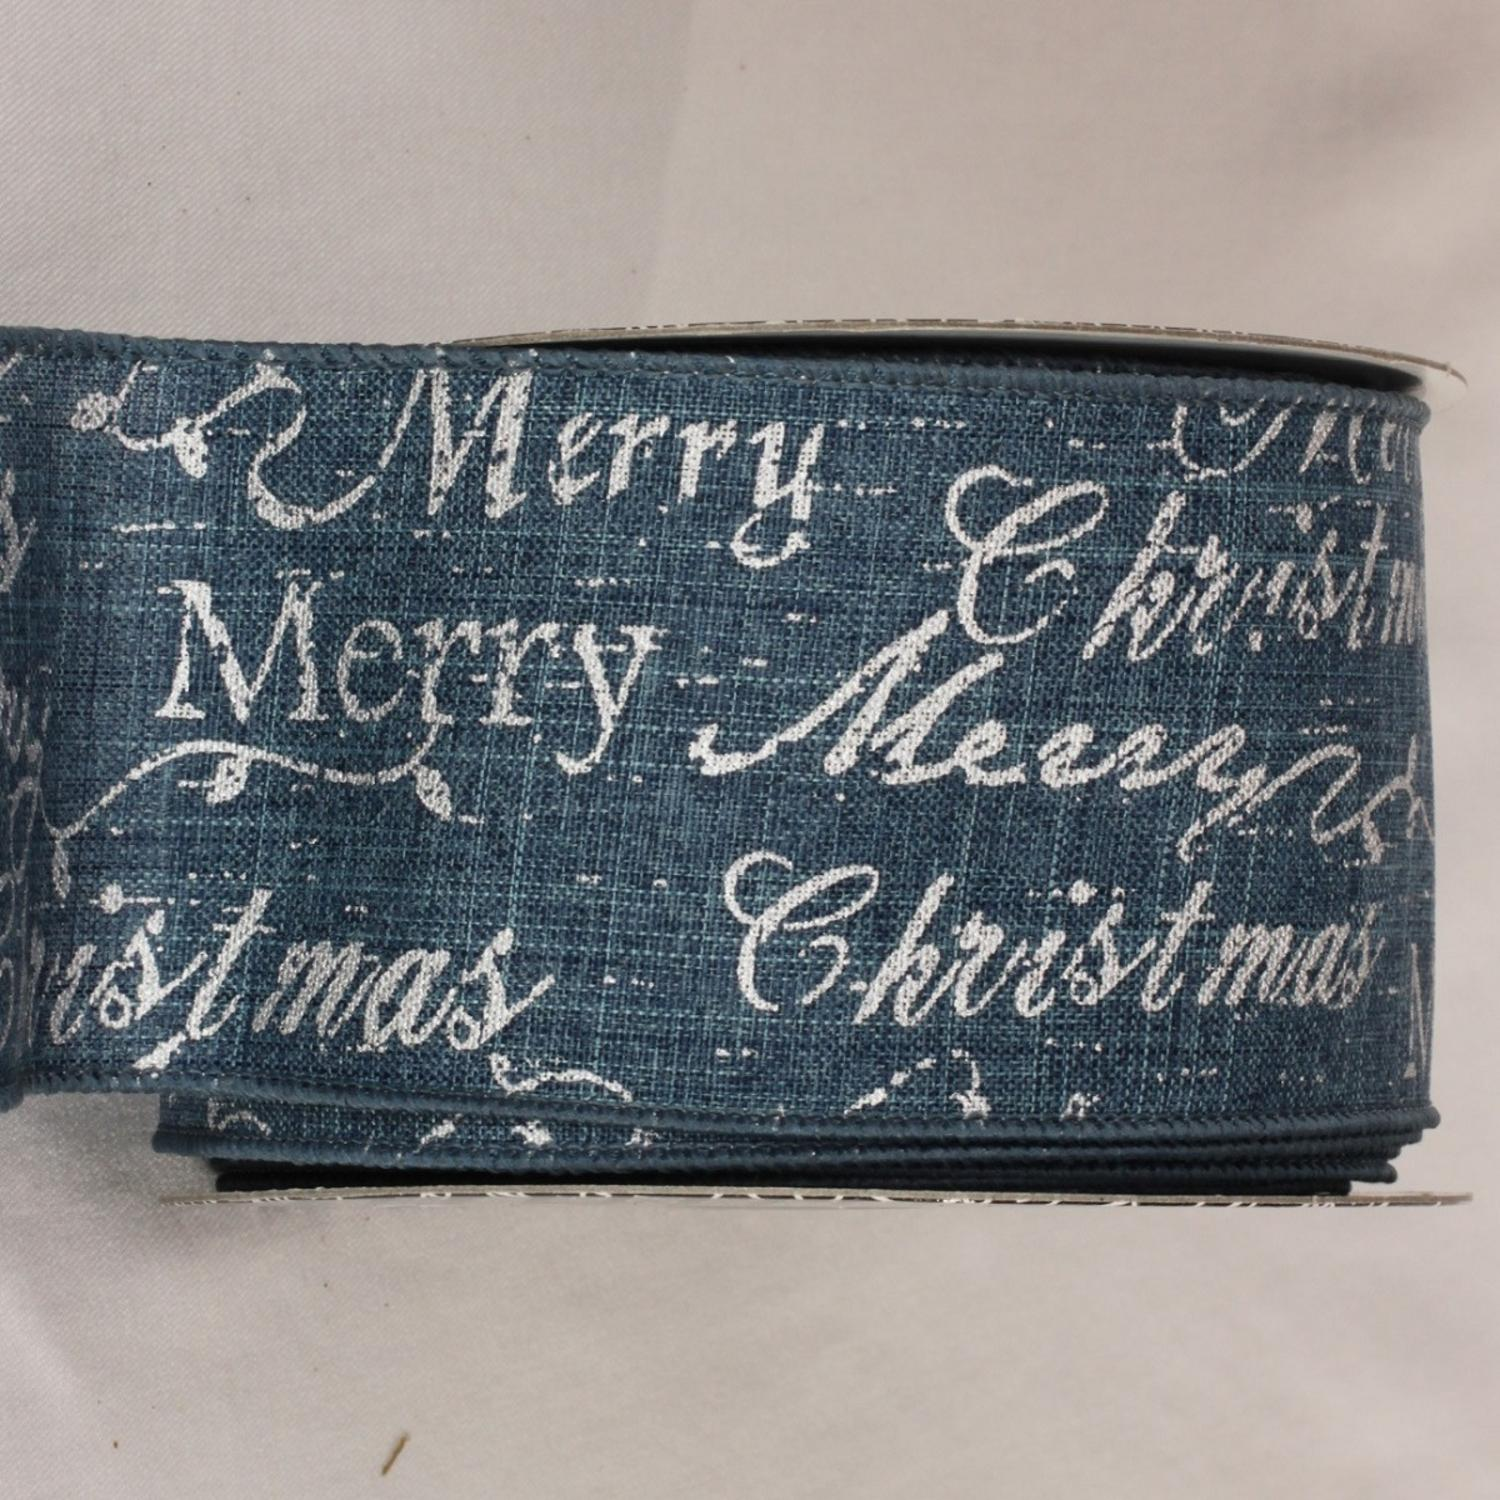 "Merry Christmas Scripted Blue and Silver Wired Craft Ribbon 3"" x 20 yards"